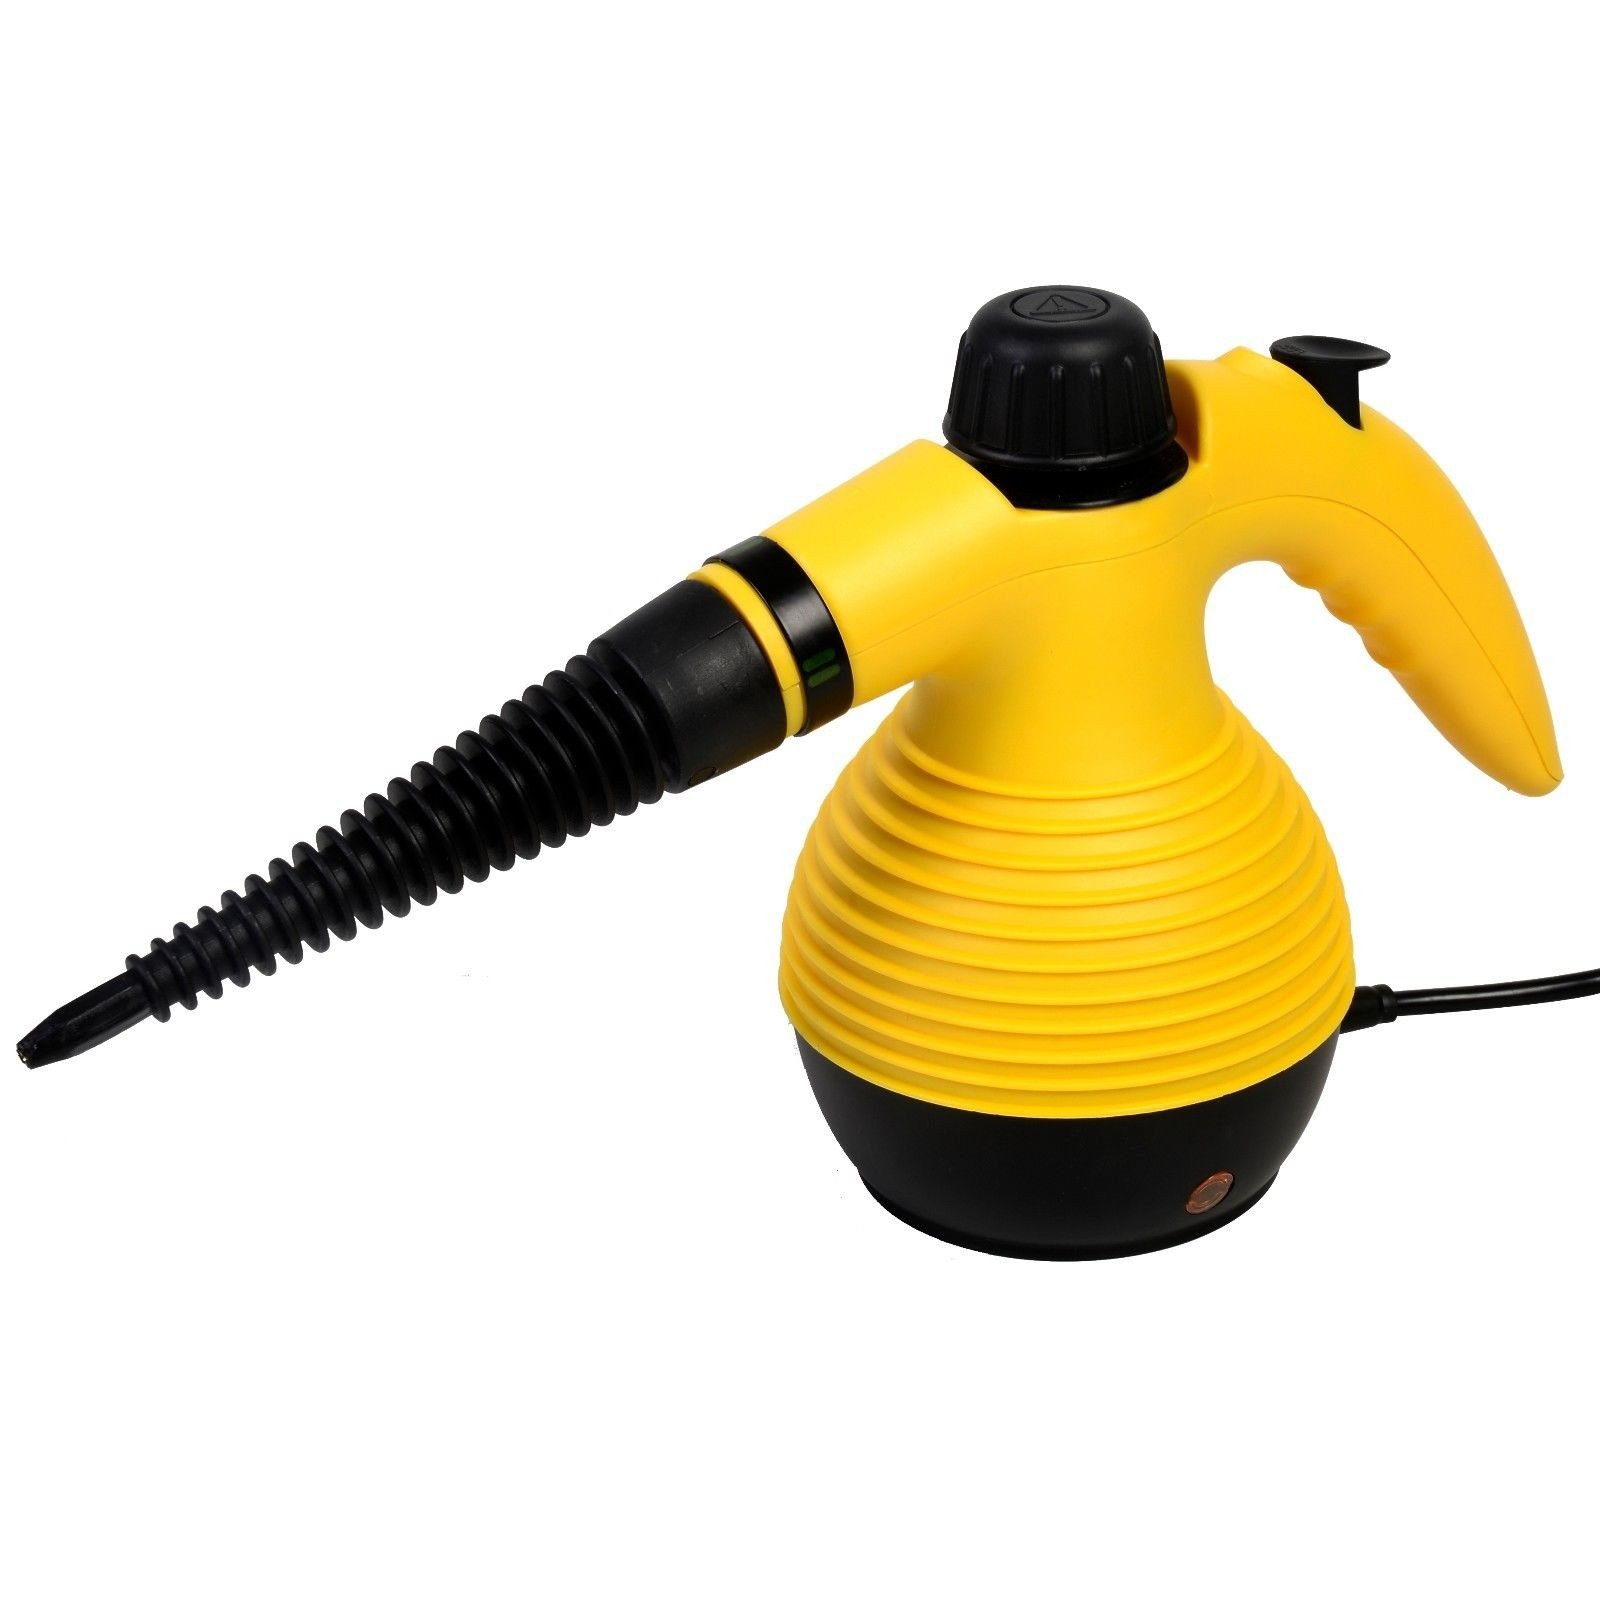 EnjoyShop Multipurpose Handheld Steam Cleaner for Stubborn Stains Removal in Bathroom, Kitchen, Surfaces, Floor, Carpet & Much More